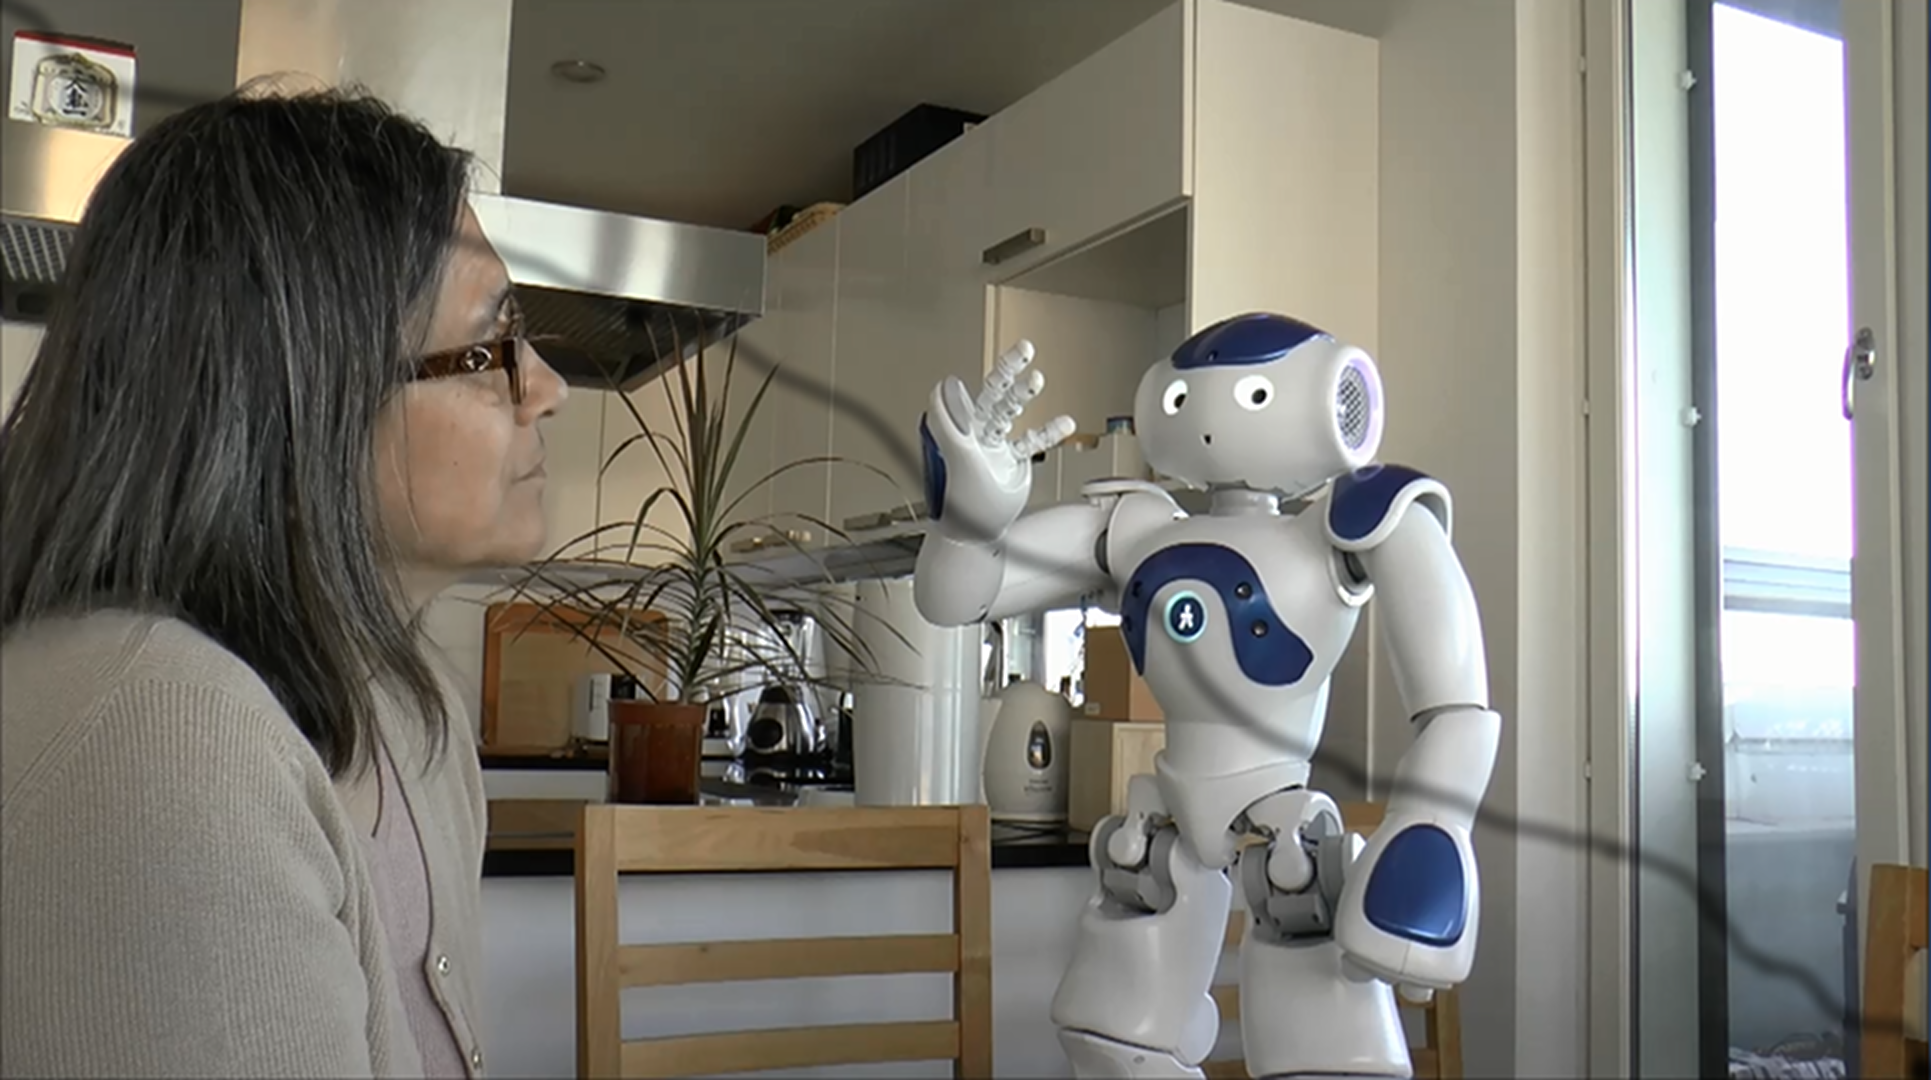 Kristiina with Nao robot at home